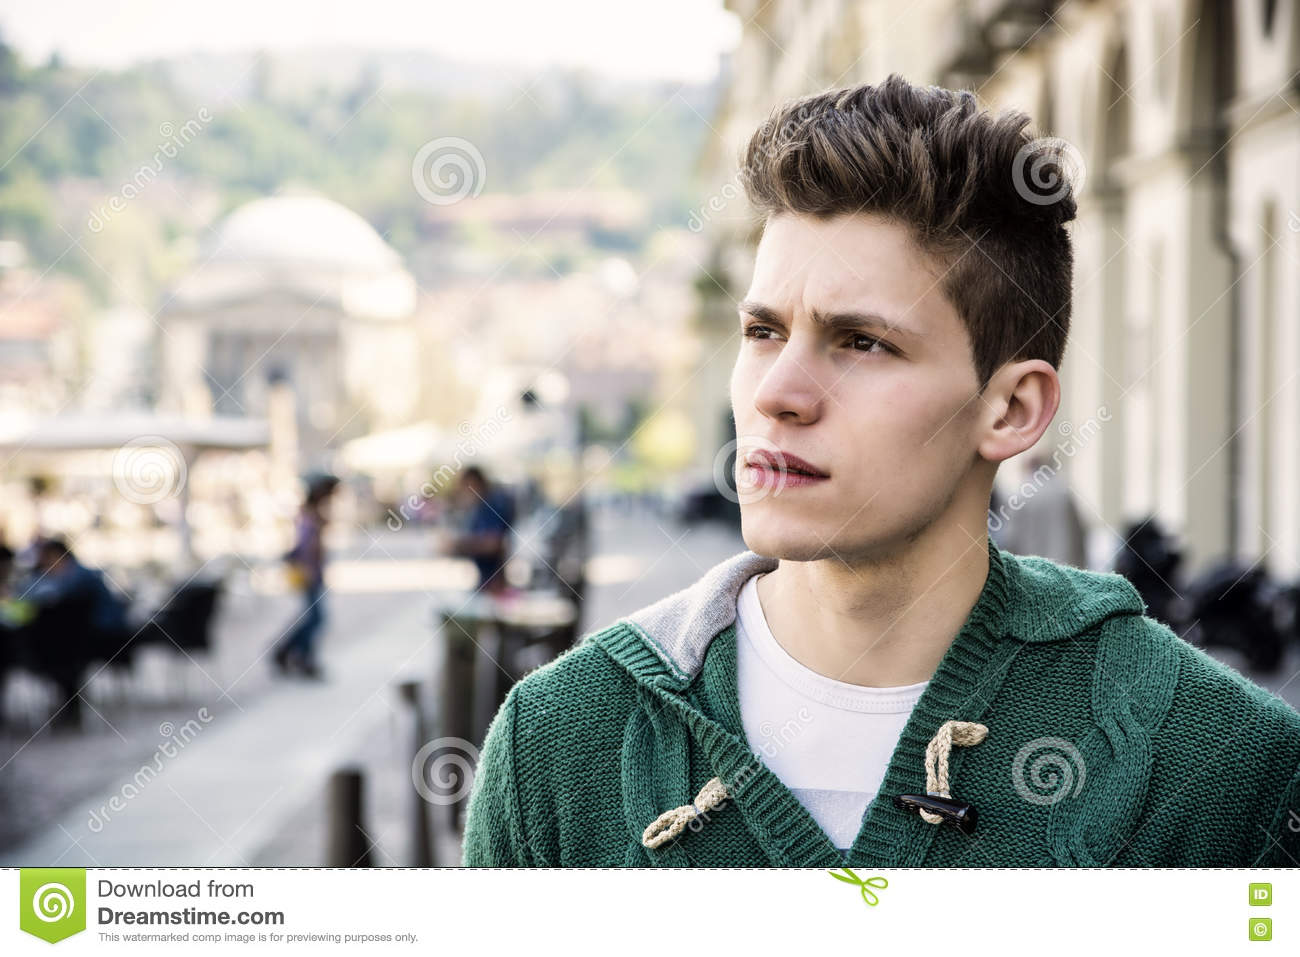 Attractive Young Man S Headshot In Urban Setting Stock Image